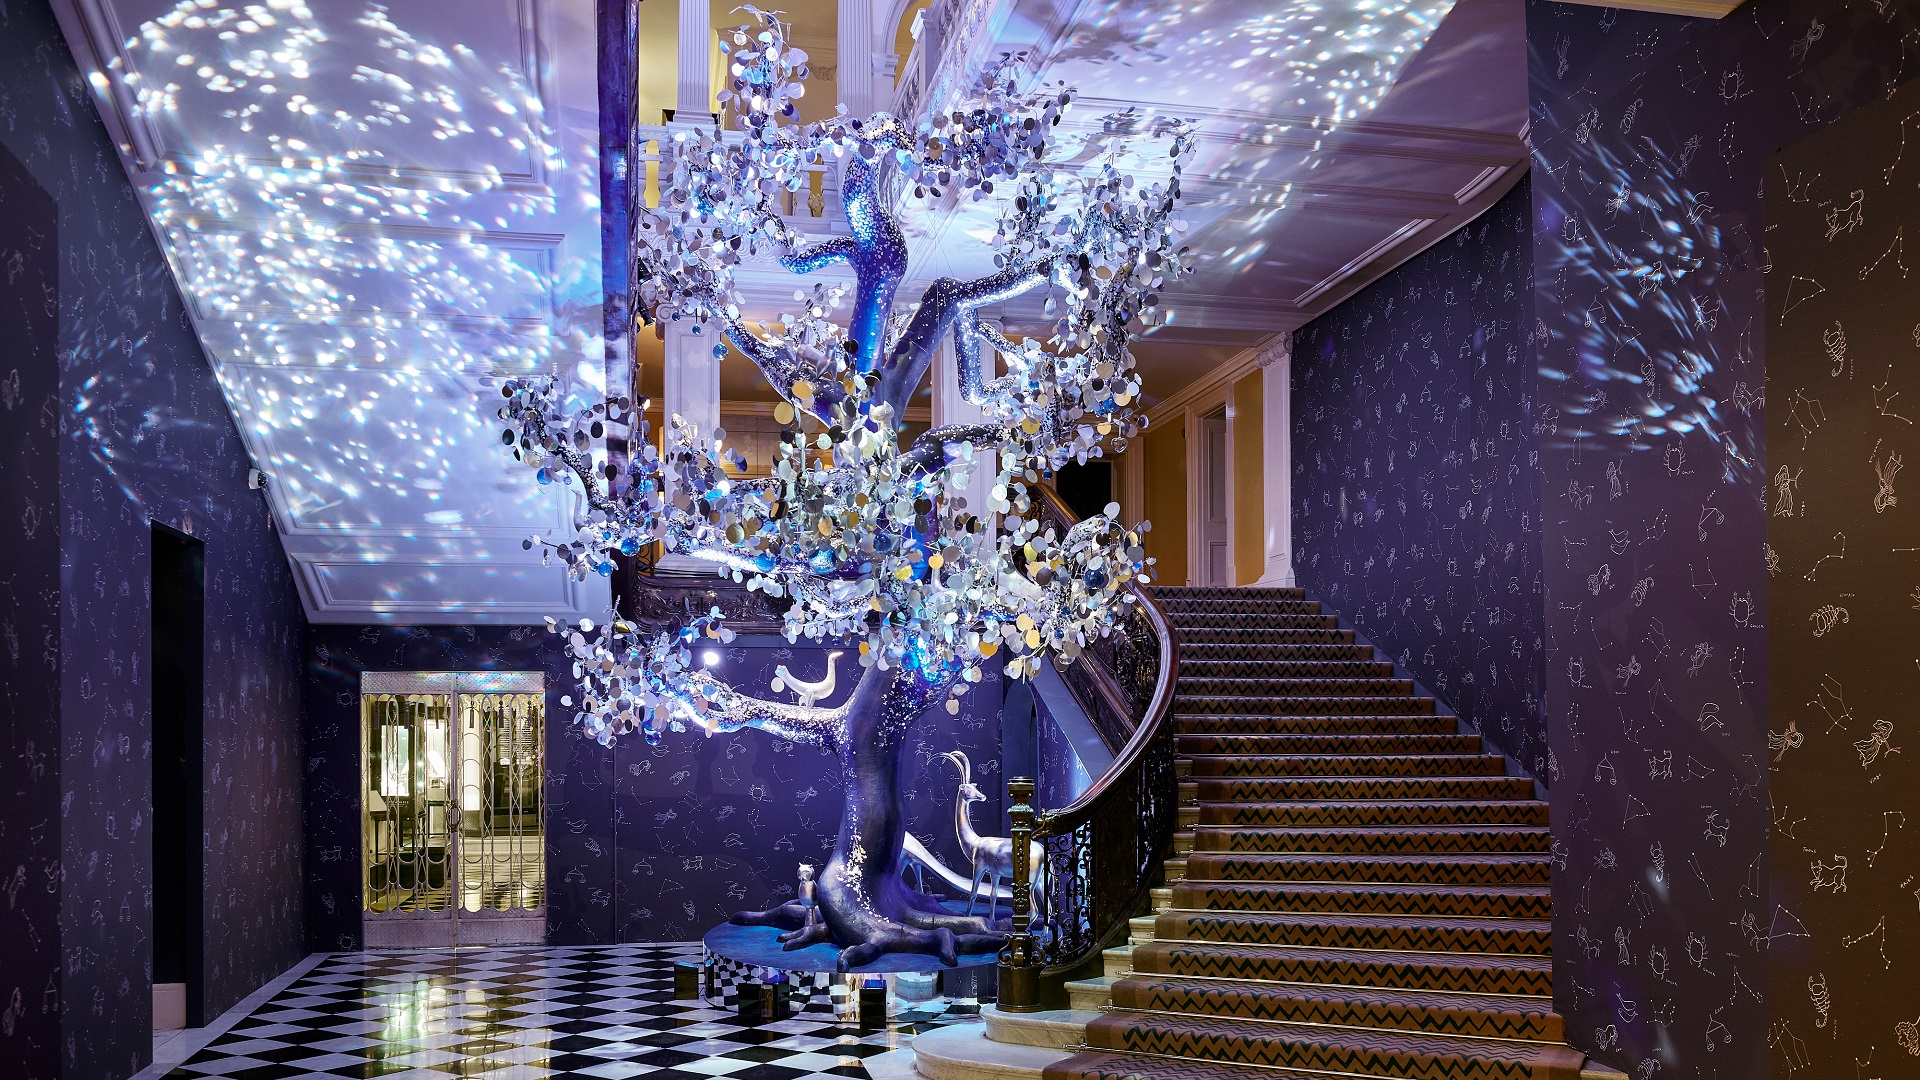 Claridge's Christmas tree shines with silver and glass decorations in a hall with black and white floor tiles.